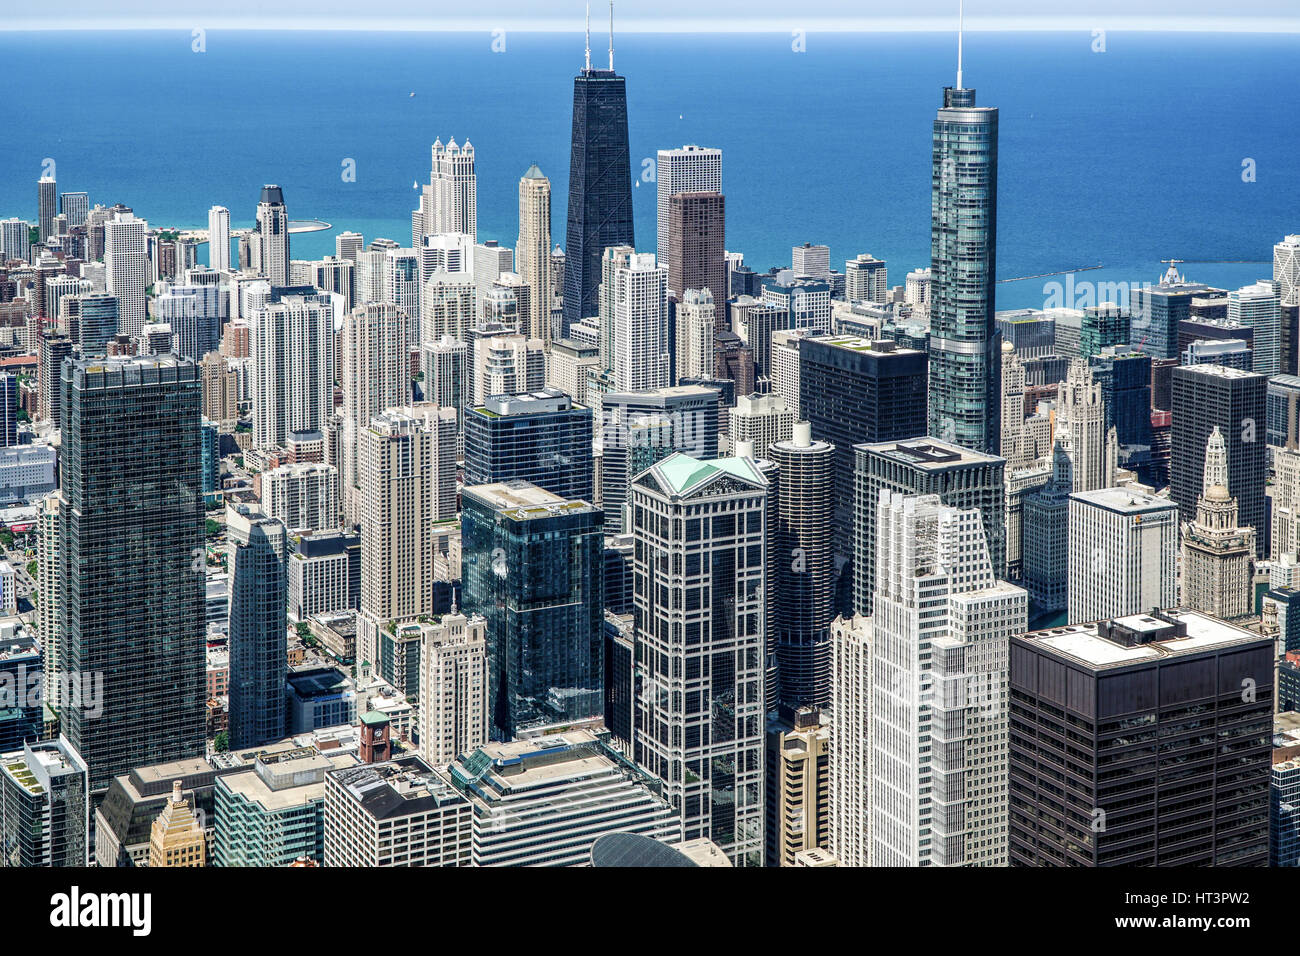 Aerial view of the City of Chicago Lake Front looking North East from the Business District of downtown with views - Stock Image